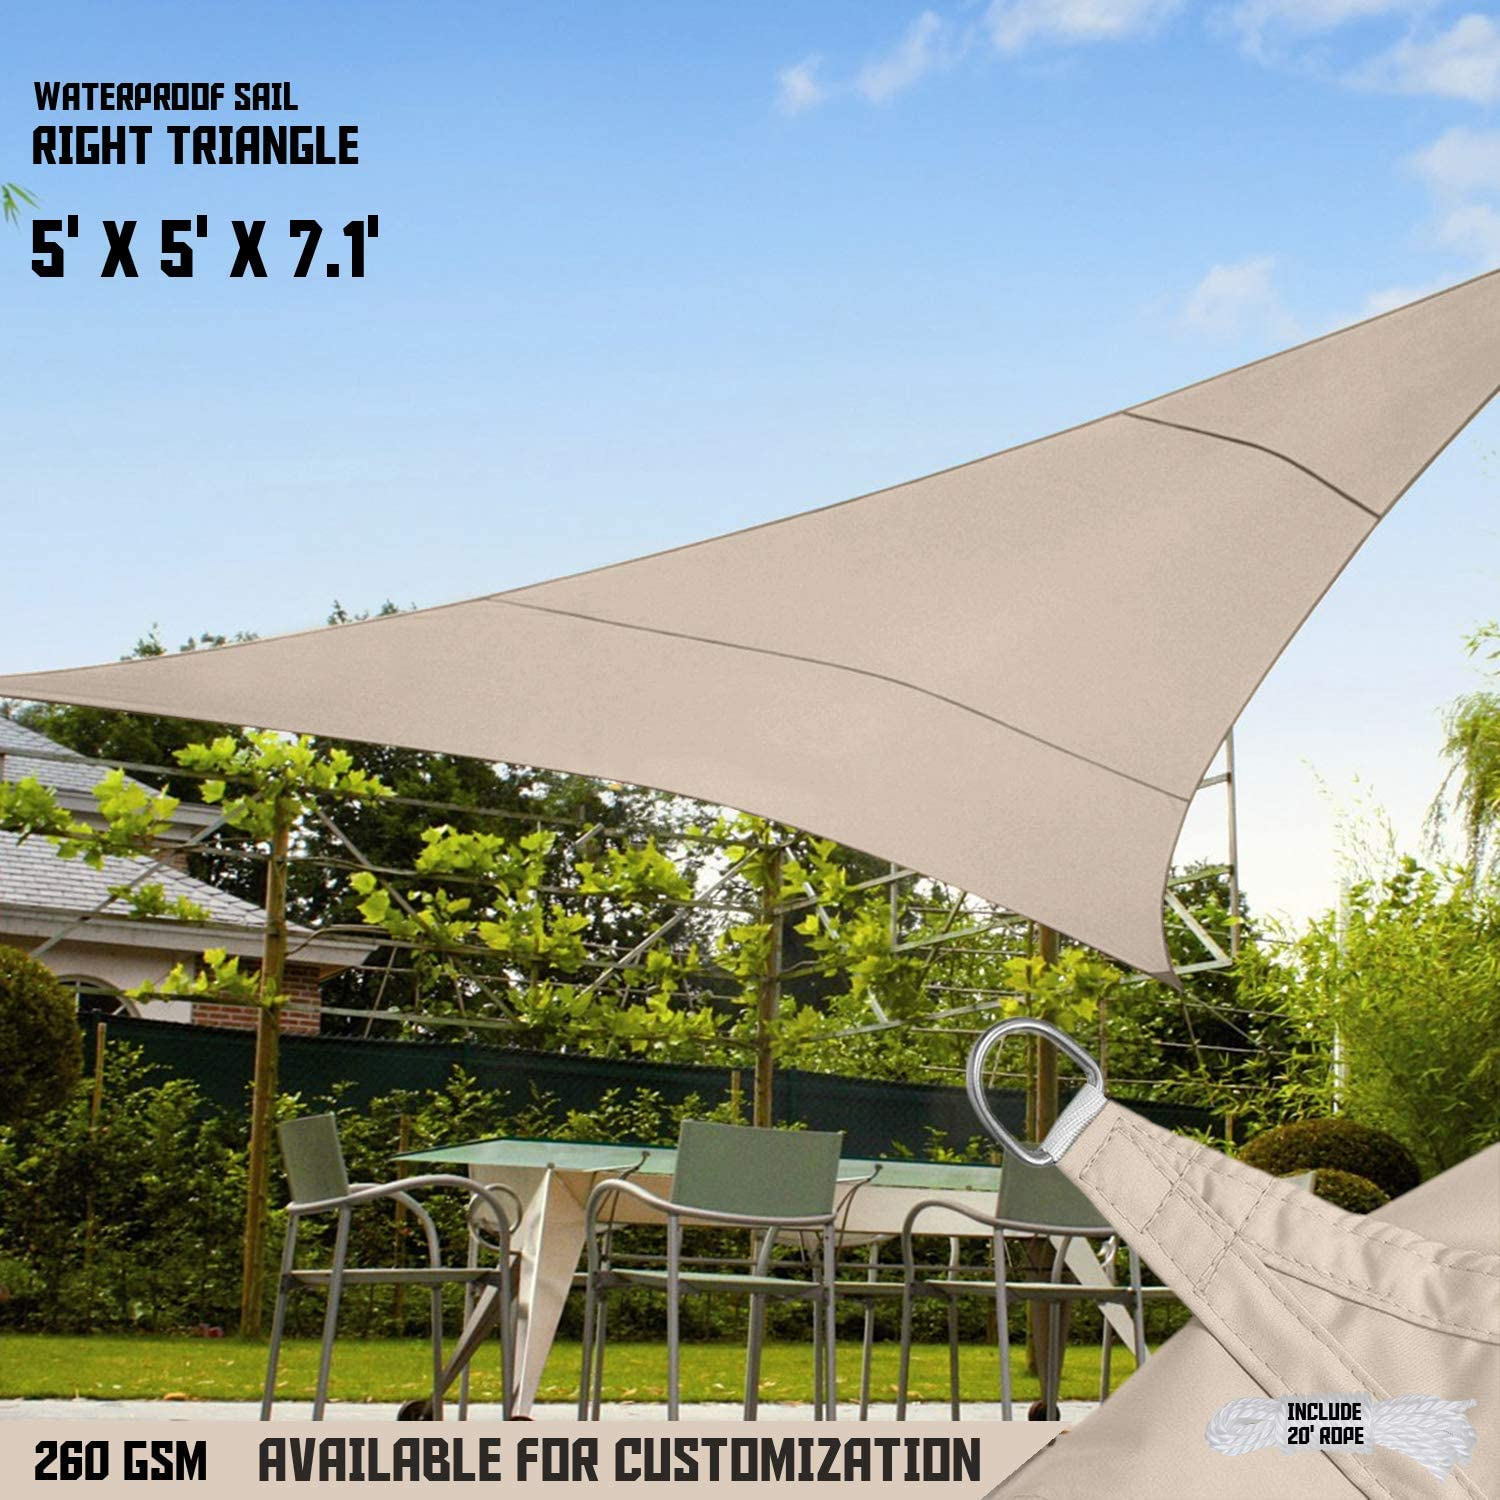 TANG Sunshades Depot 5x5x7 Right Triangle Waterproof Knitted Shade Sail with 6 inch Kit Curved Edge Beige 220 GSM UV Block Shade Fabric Pergola Carport Awning Canopy Replacement Awning